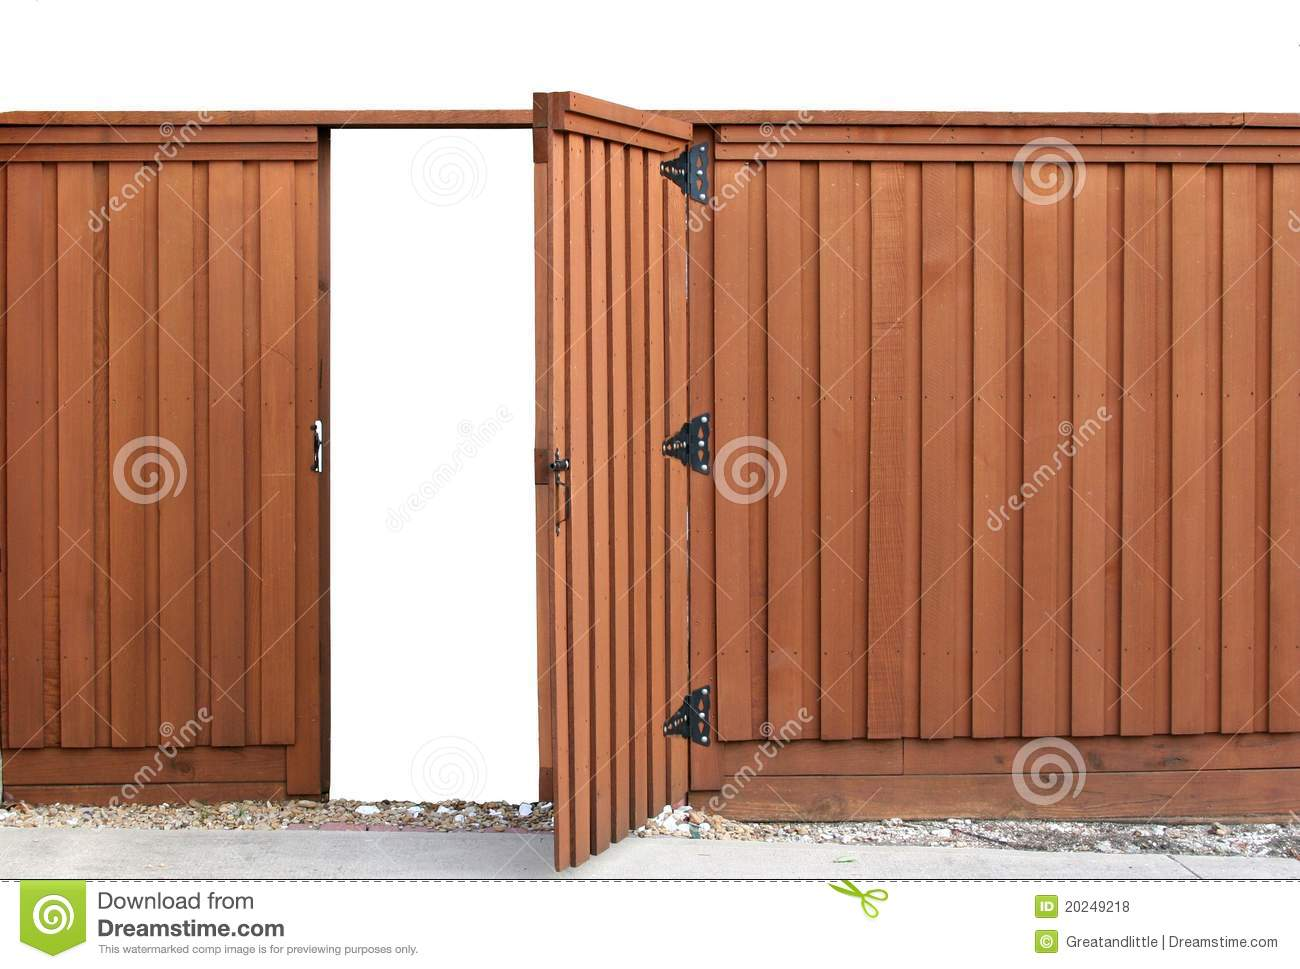 Opening Gate In A Wooden Fence Stock Photo Image 20249218